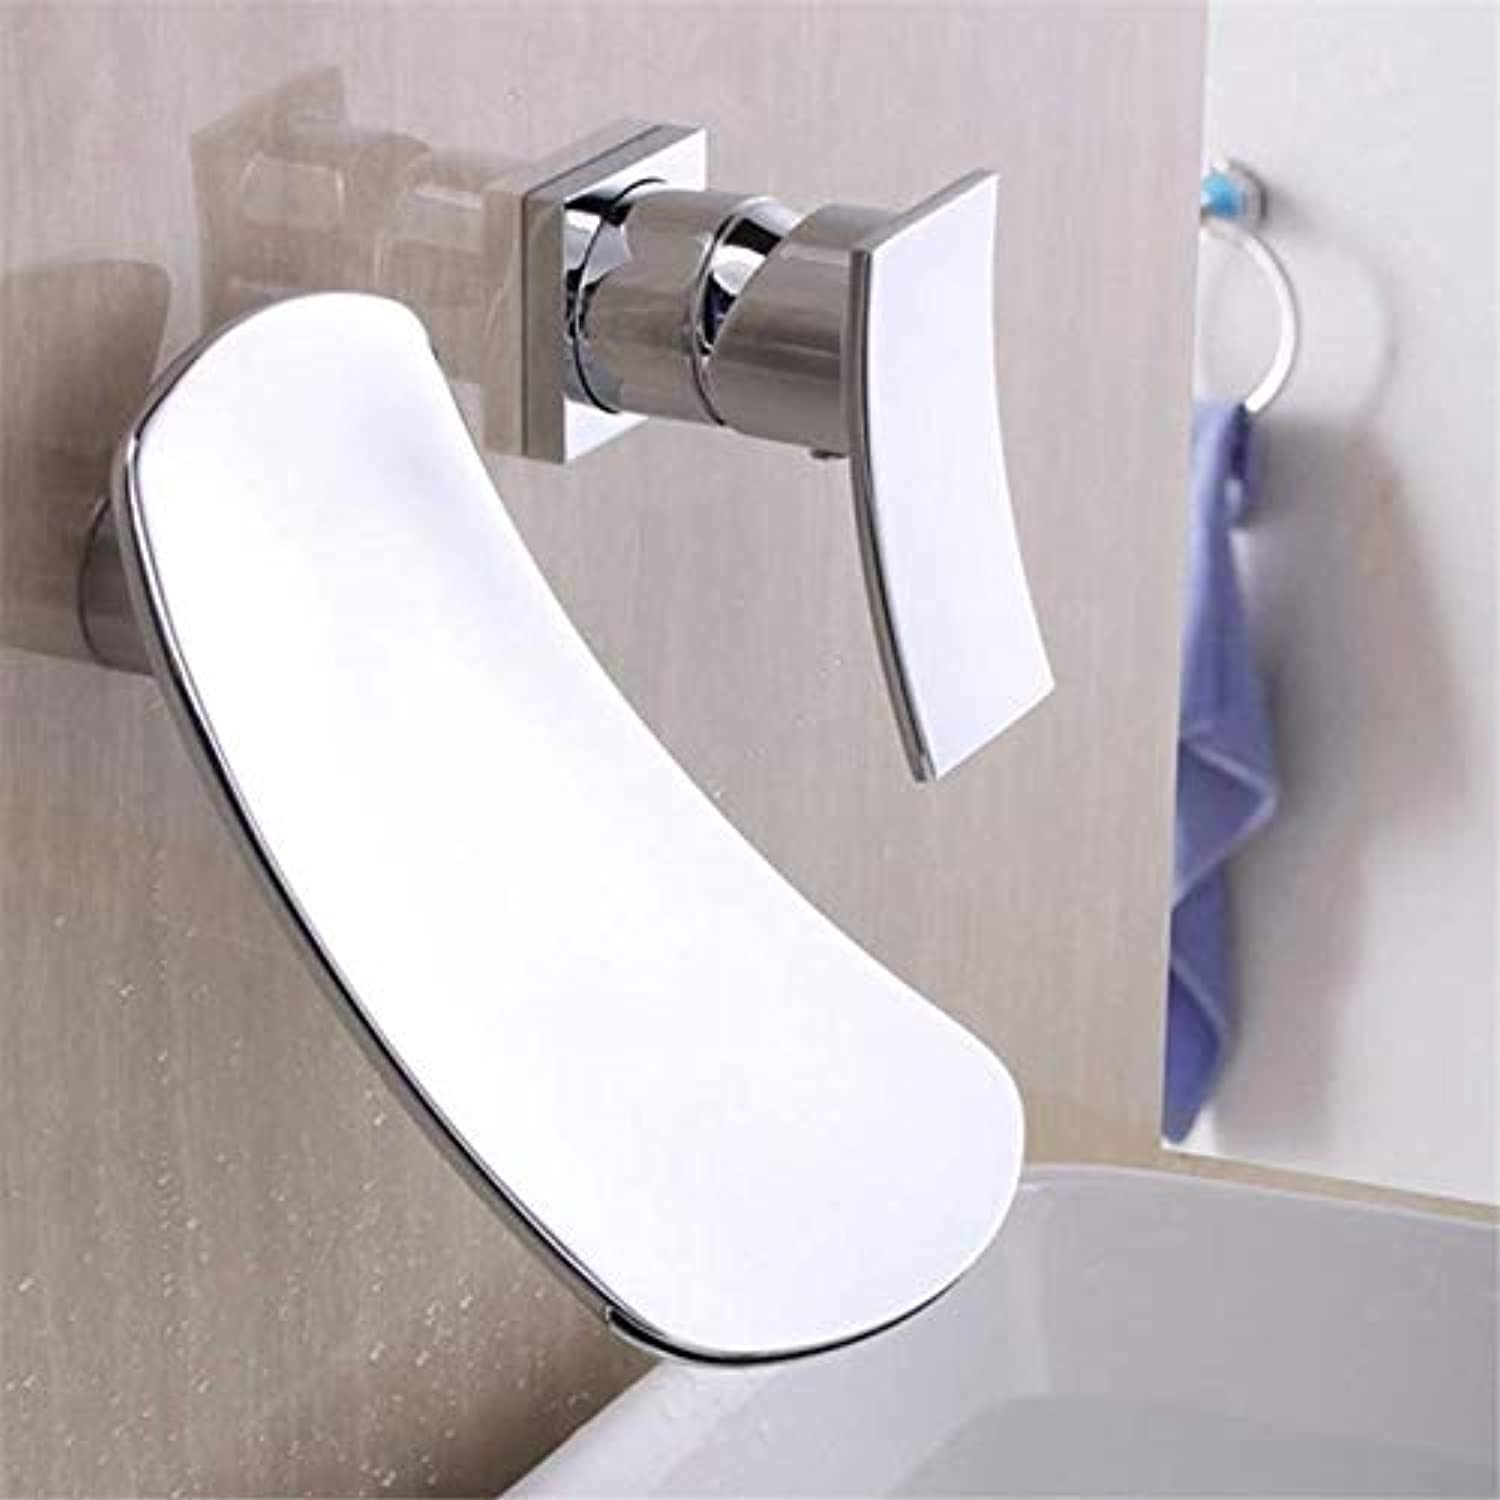 Washbasin Faucet Kitchen Faucet Brass Bathroom Copper Wall Basin Faucet impervious Sink Water Faucet